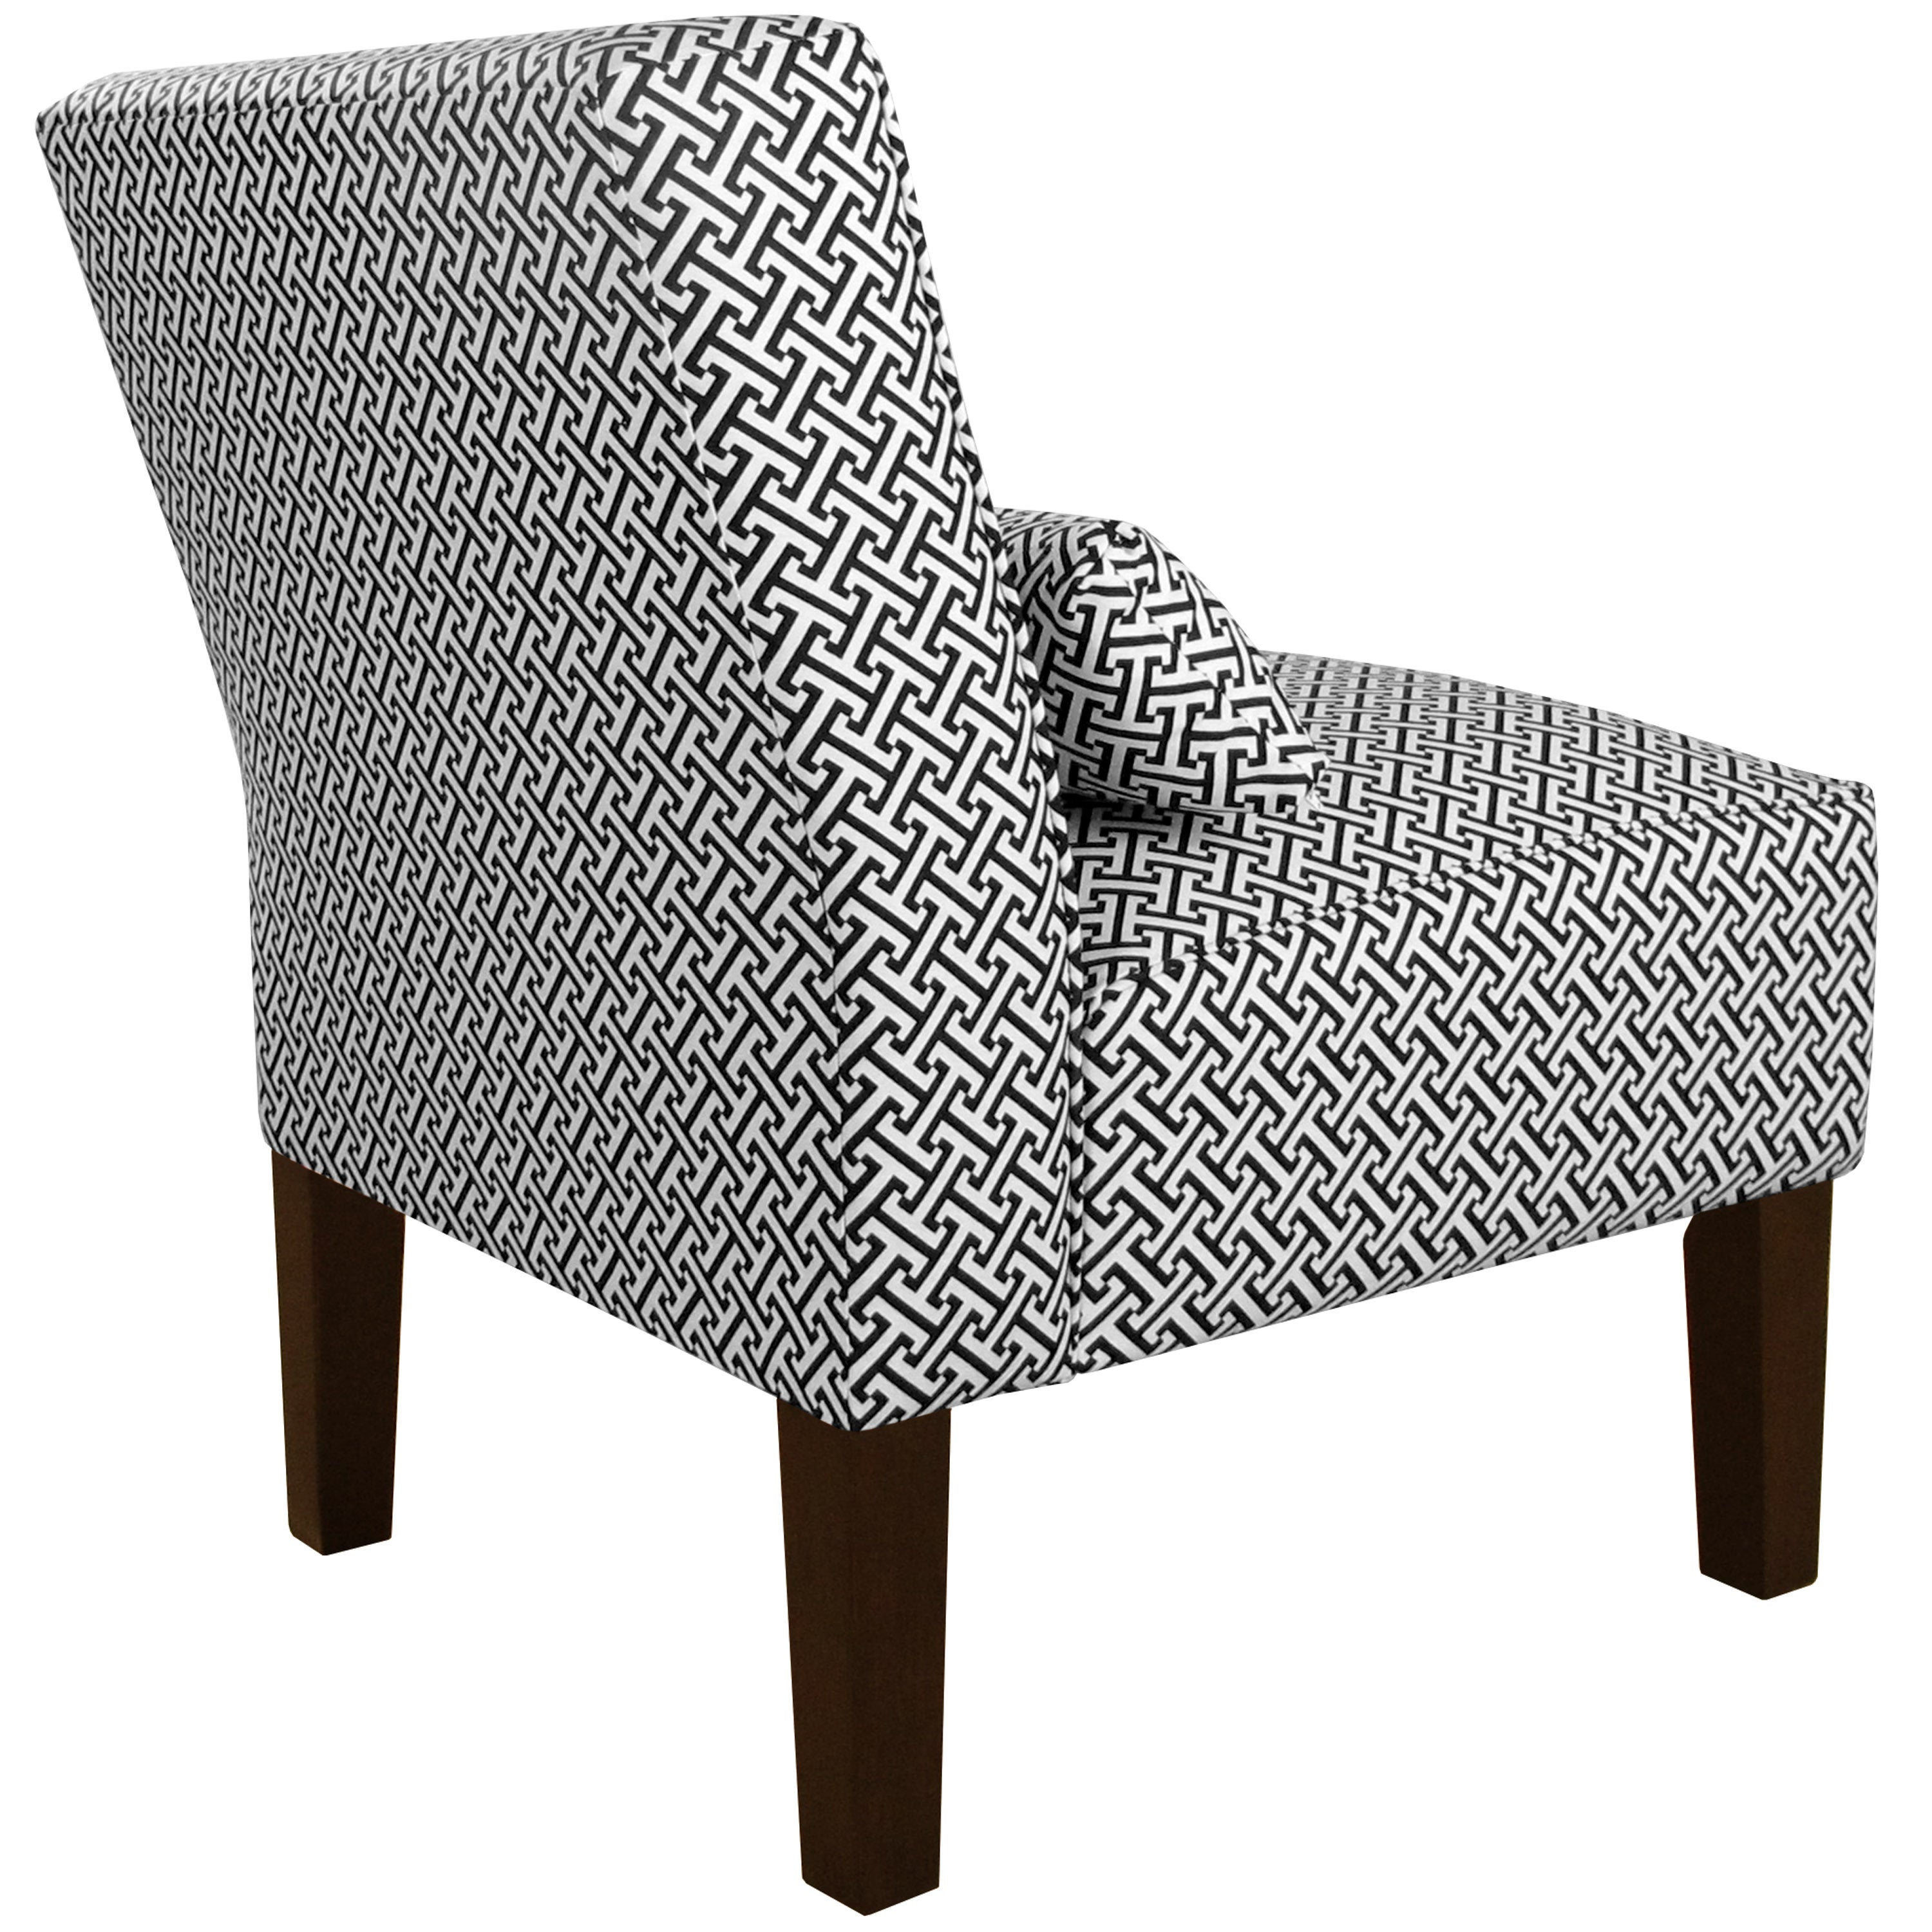 Skyline furniture cross section licorice cotton upholstered solid pine armless chair